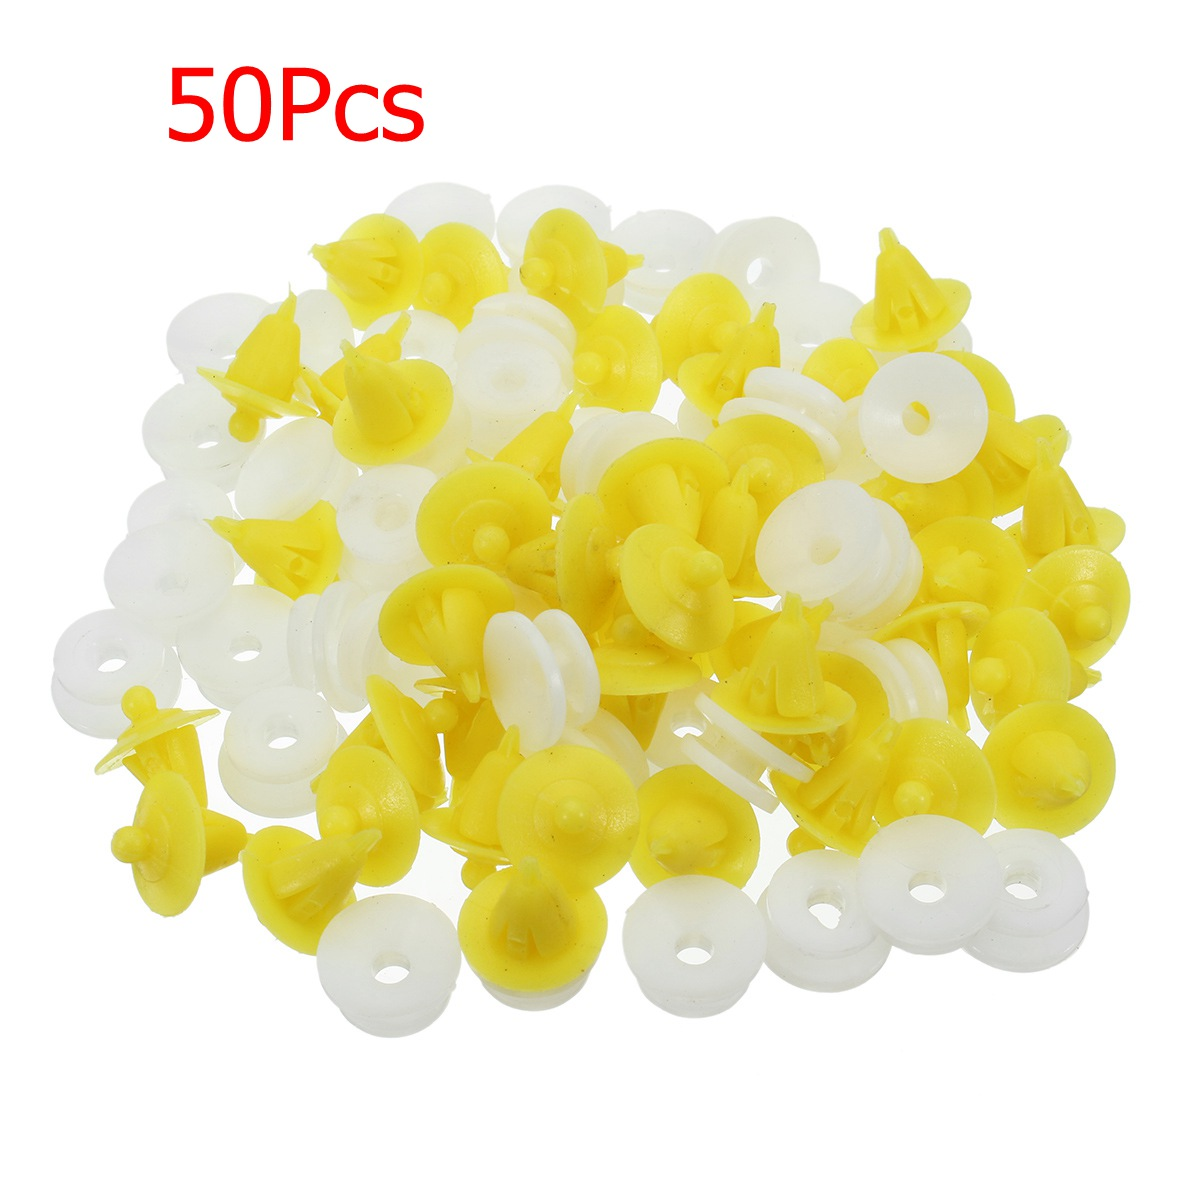 50Pcs Car Interior Door Card Panel Plastic Clips for Renault Clio Megane Scenic Twingo